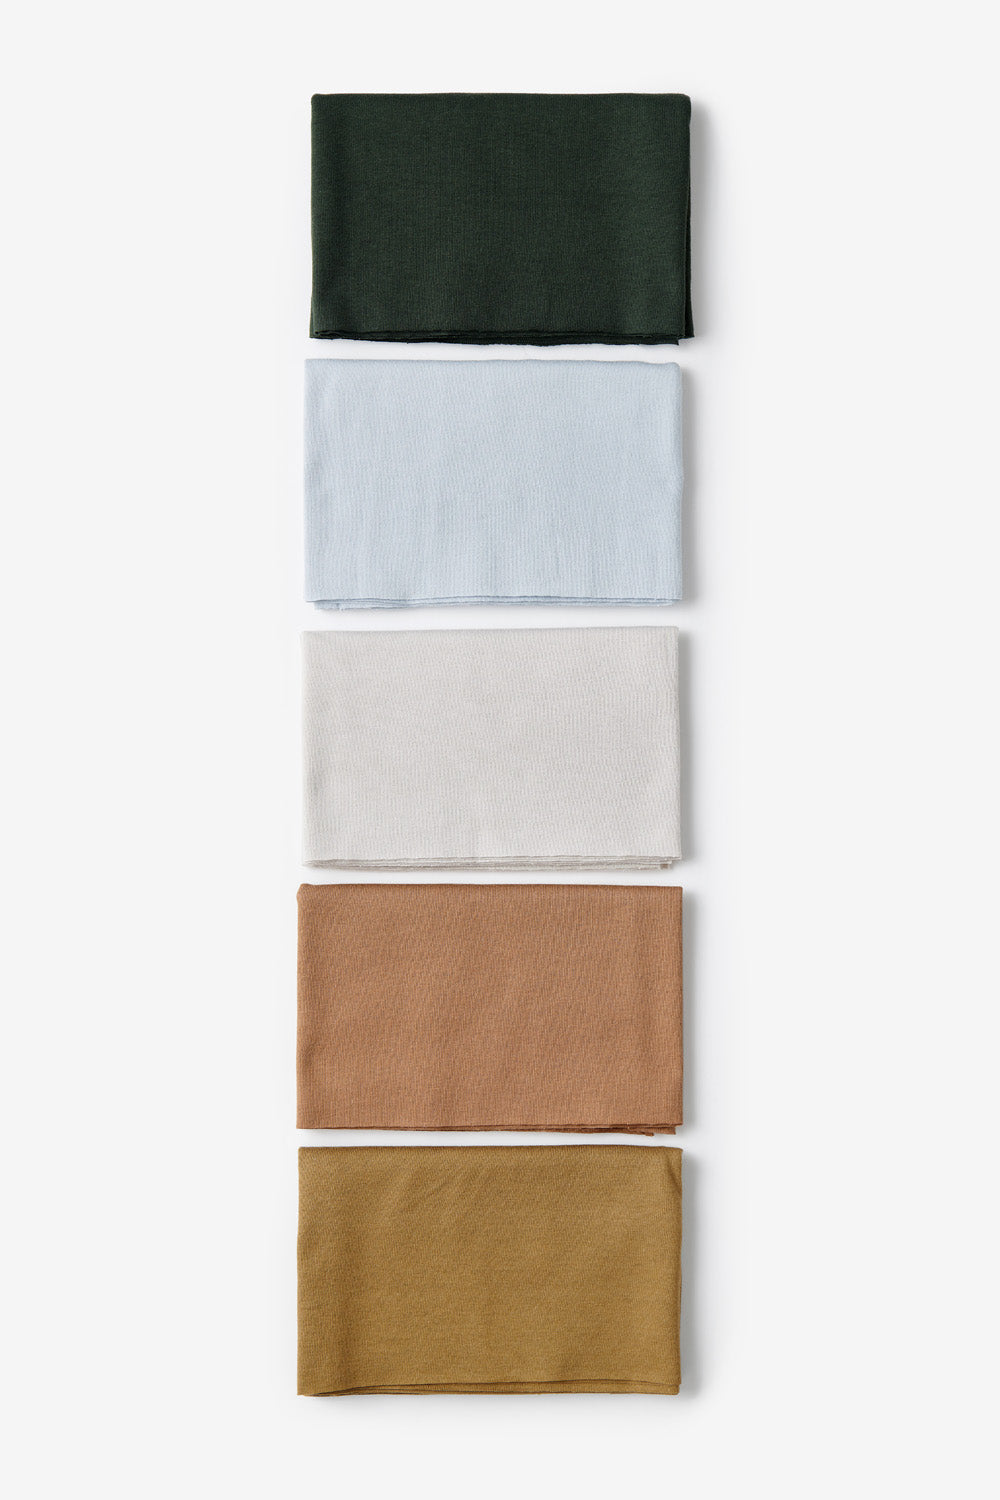 The School of Making The Trench Bundle with Tonal Color Palette